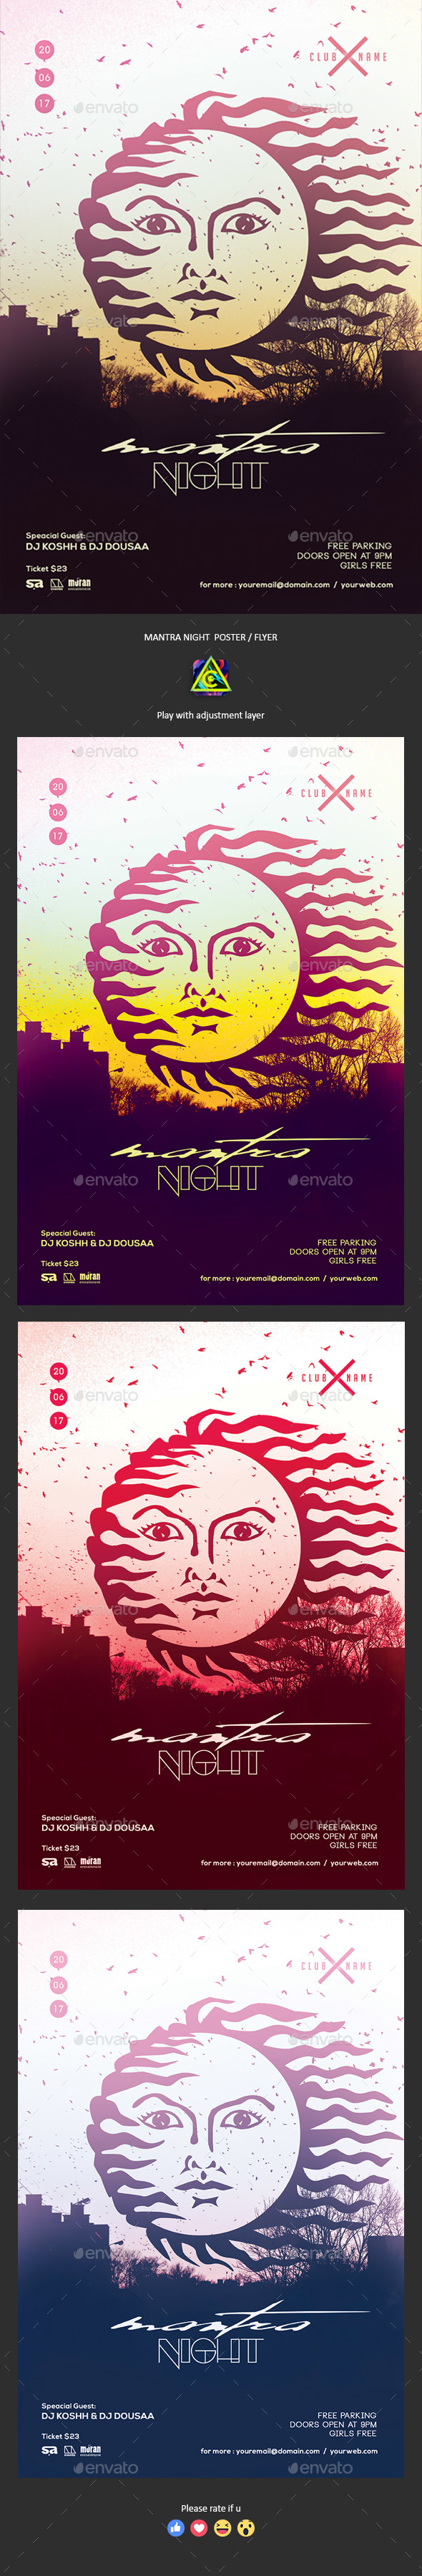 Mantra Night Party Poster / Flyer - Clubs & Parties Events